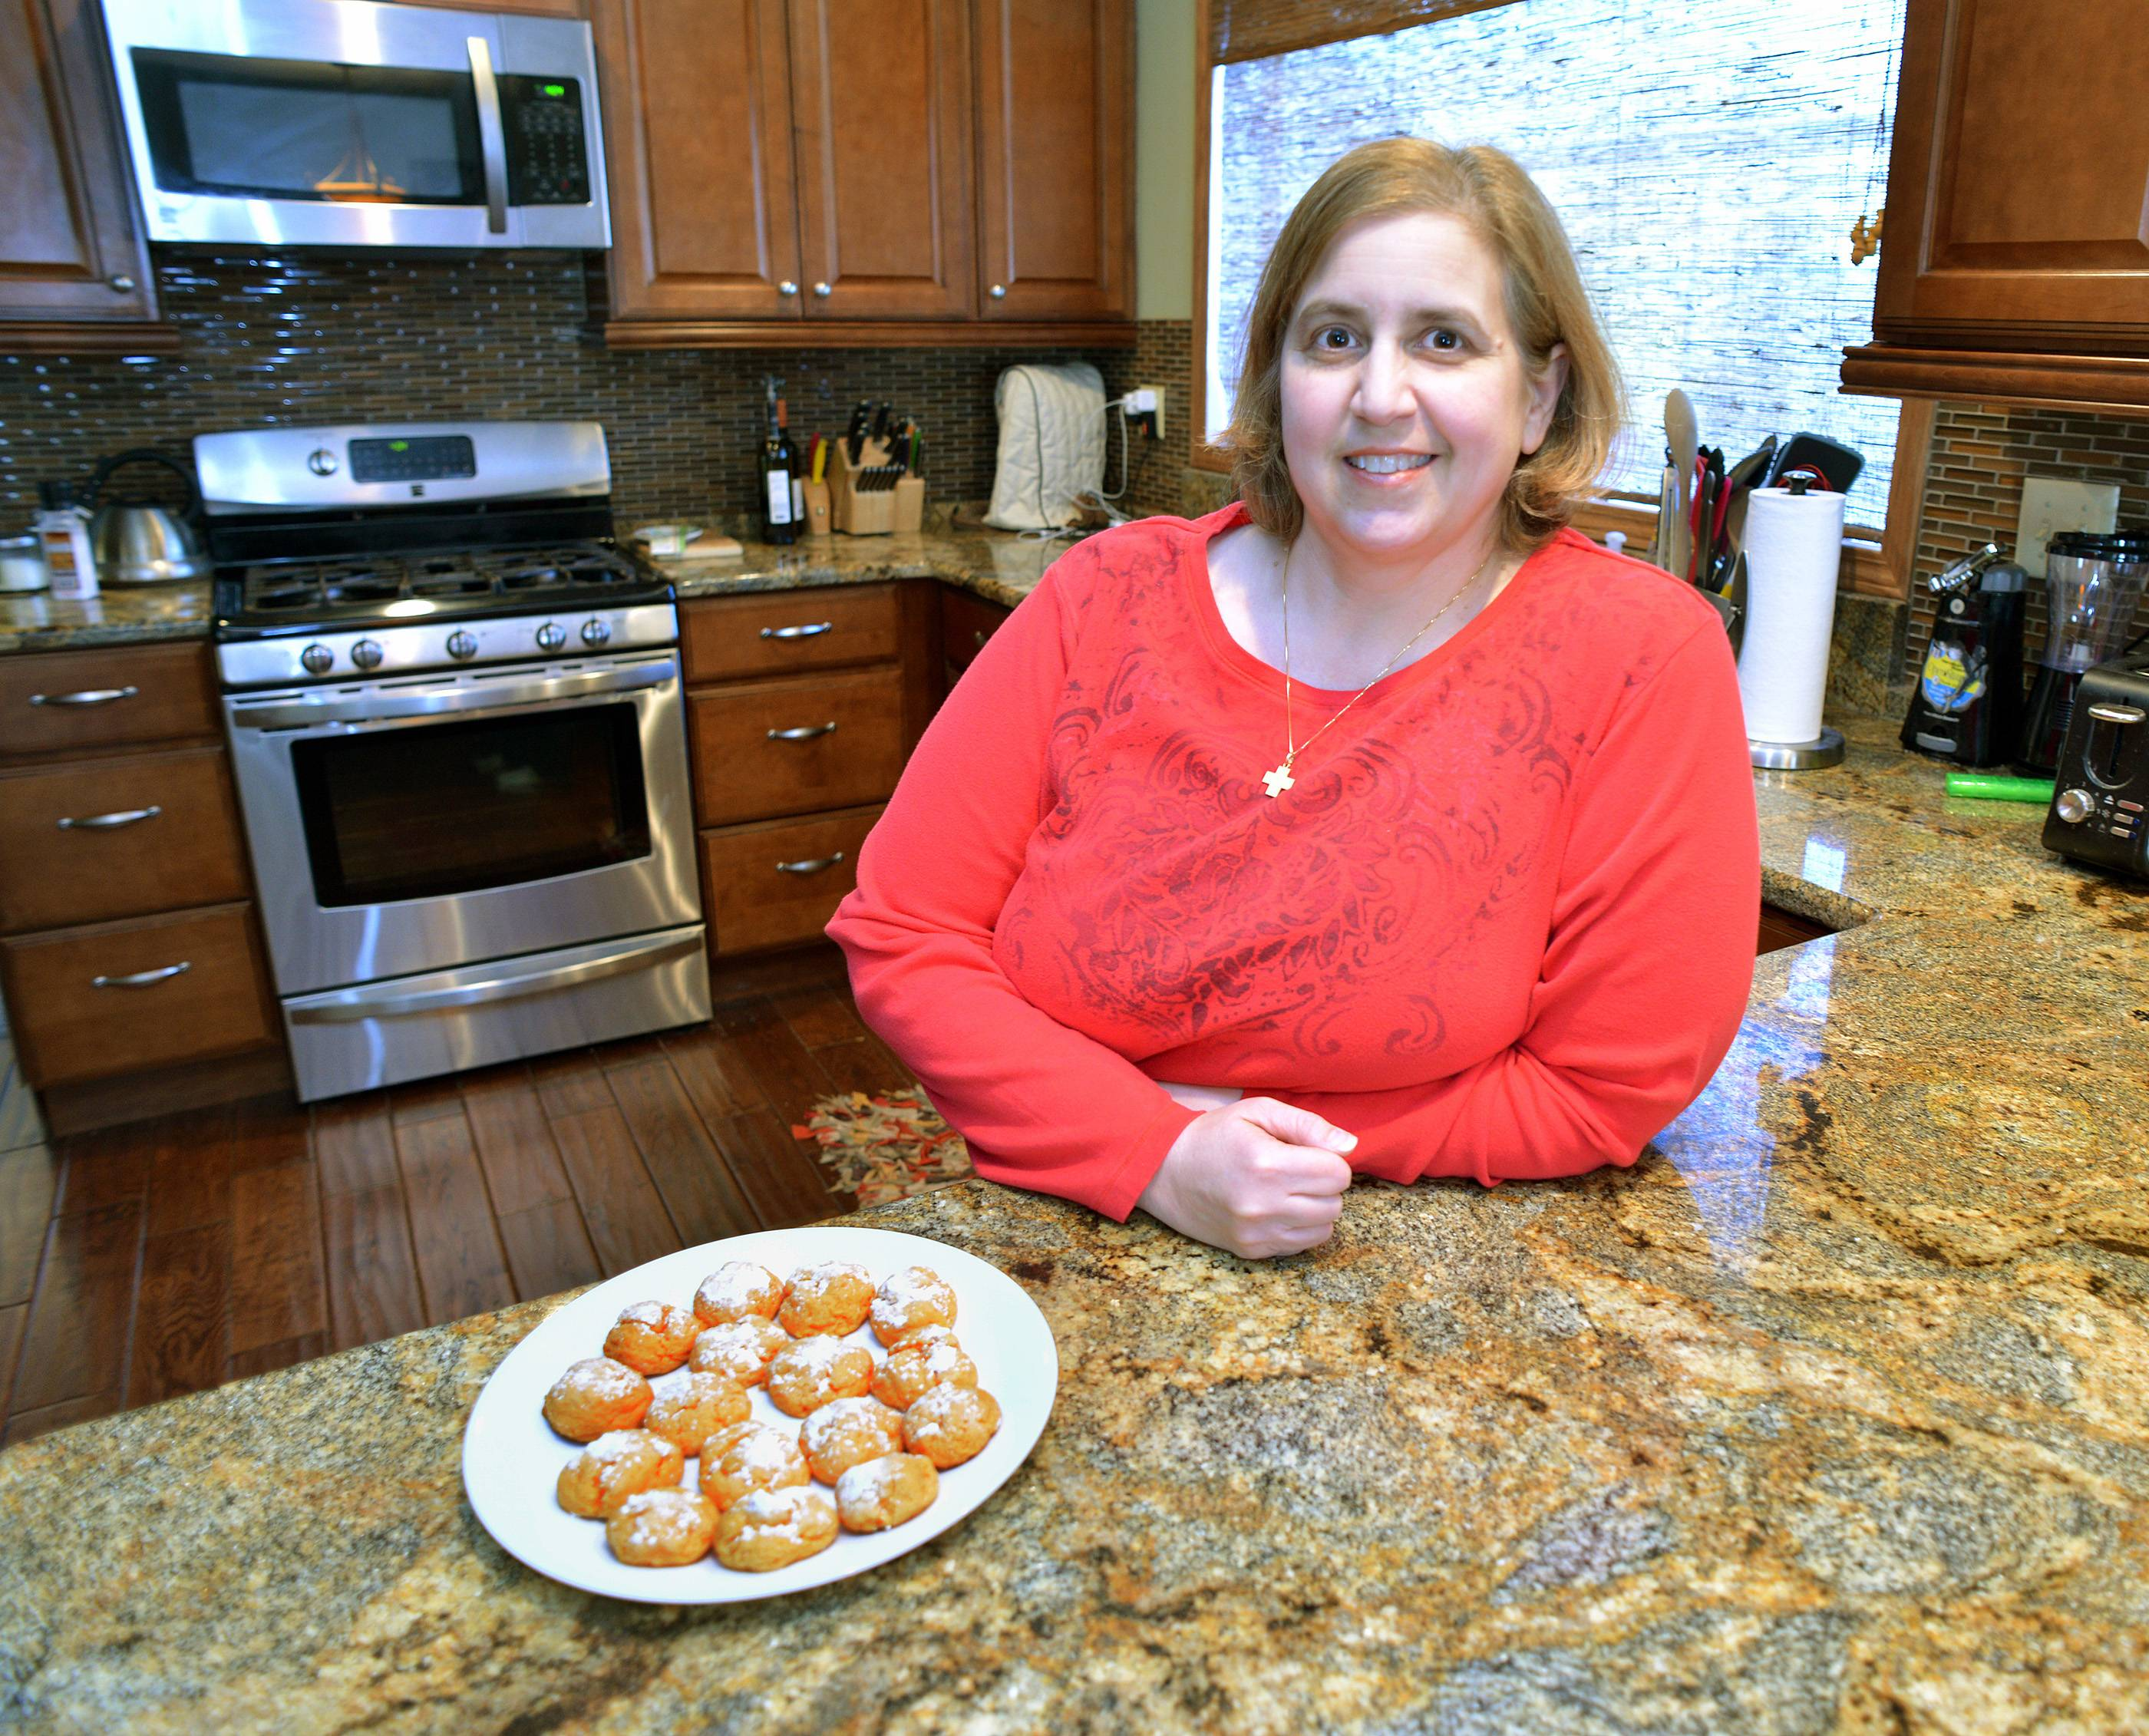 Christine Crabtree shows off a fresh batch of her orange dream cookies in her Winfield kitchen.